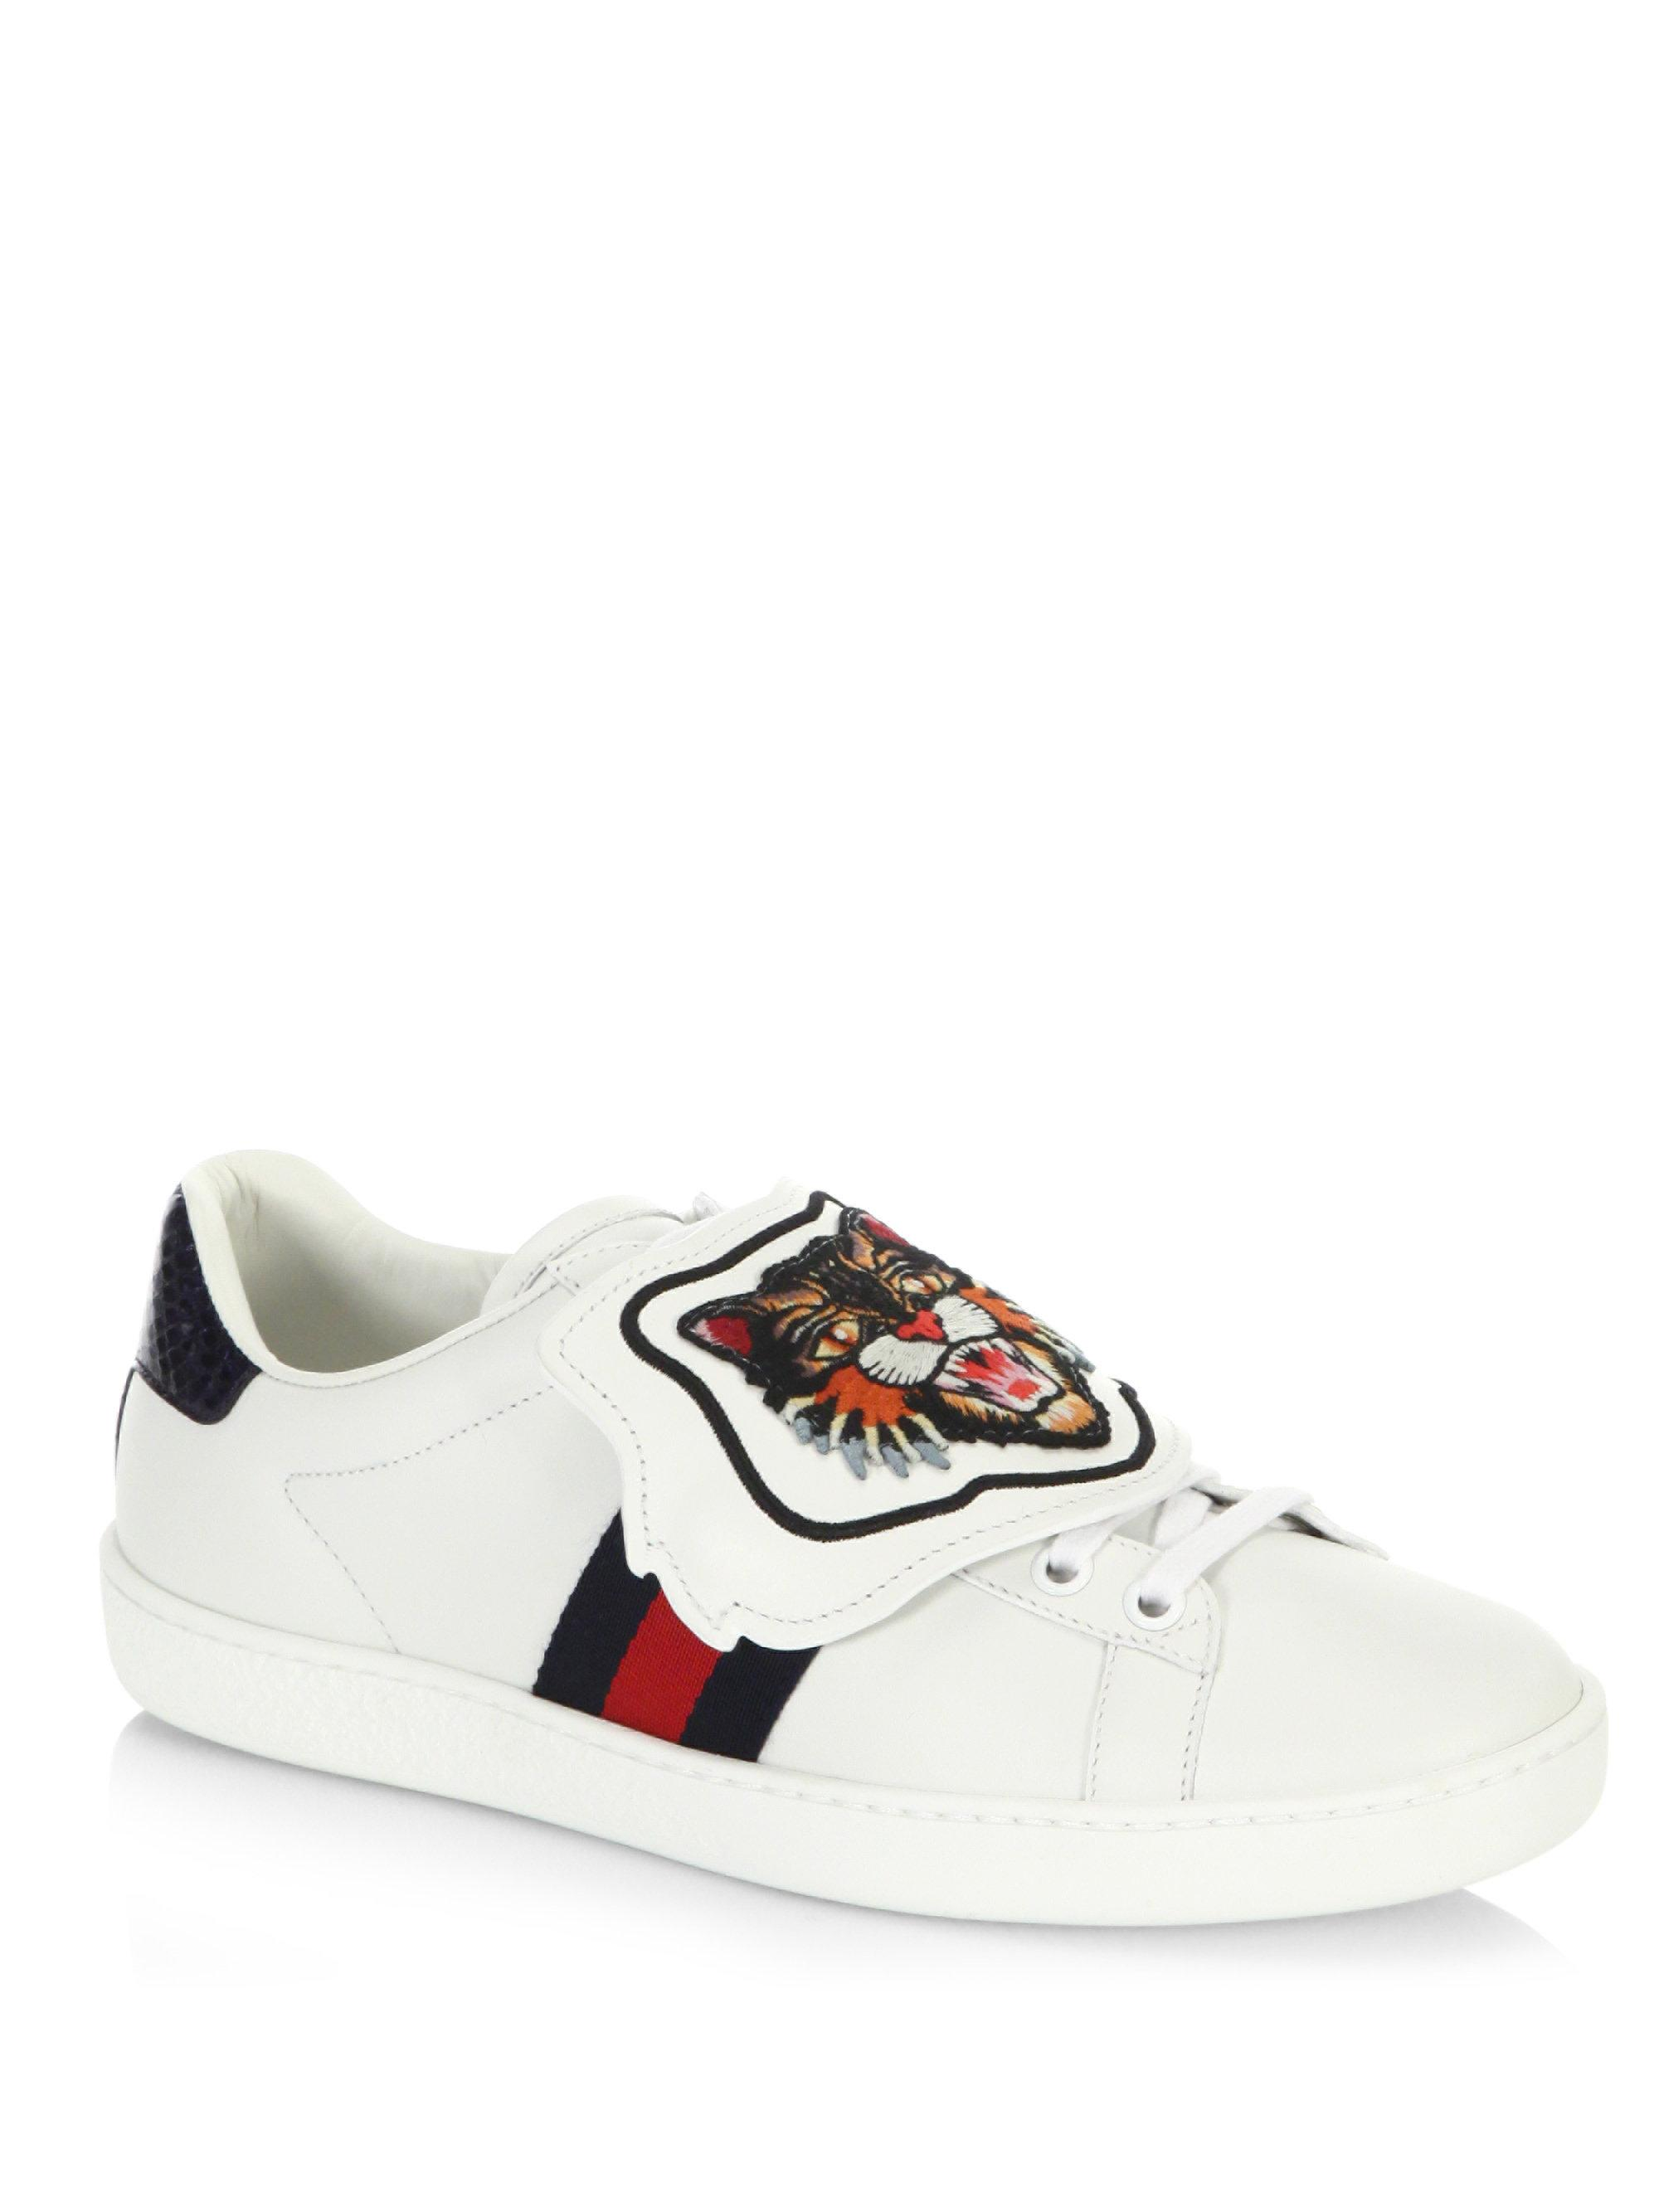 0c85598b3 Gucci New Ace Lion Patch Sneakers in White - Lyst